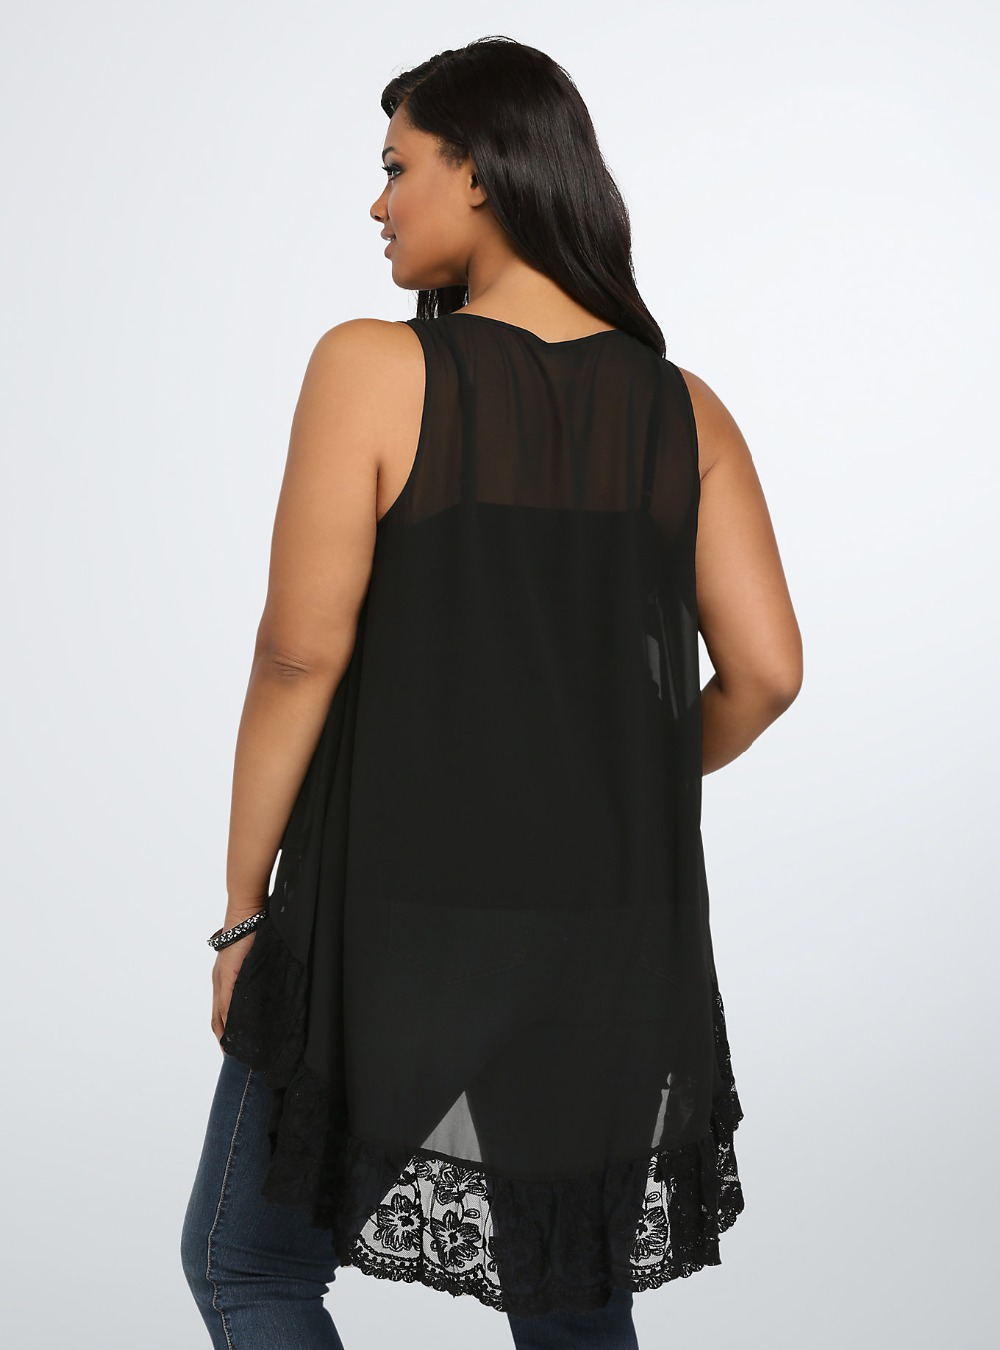 Black Summer Blouses - Breeze Clothing-4579